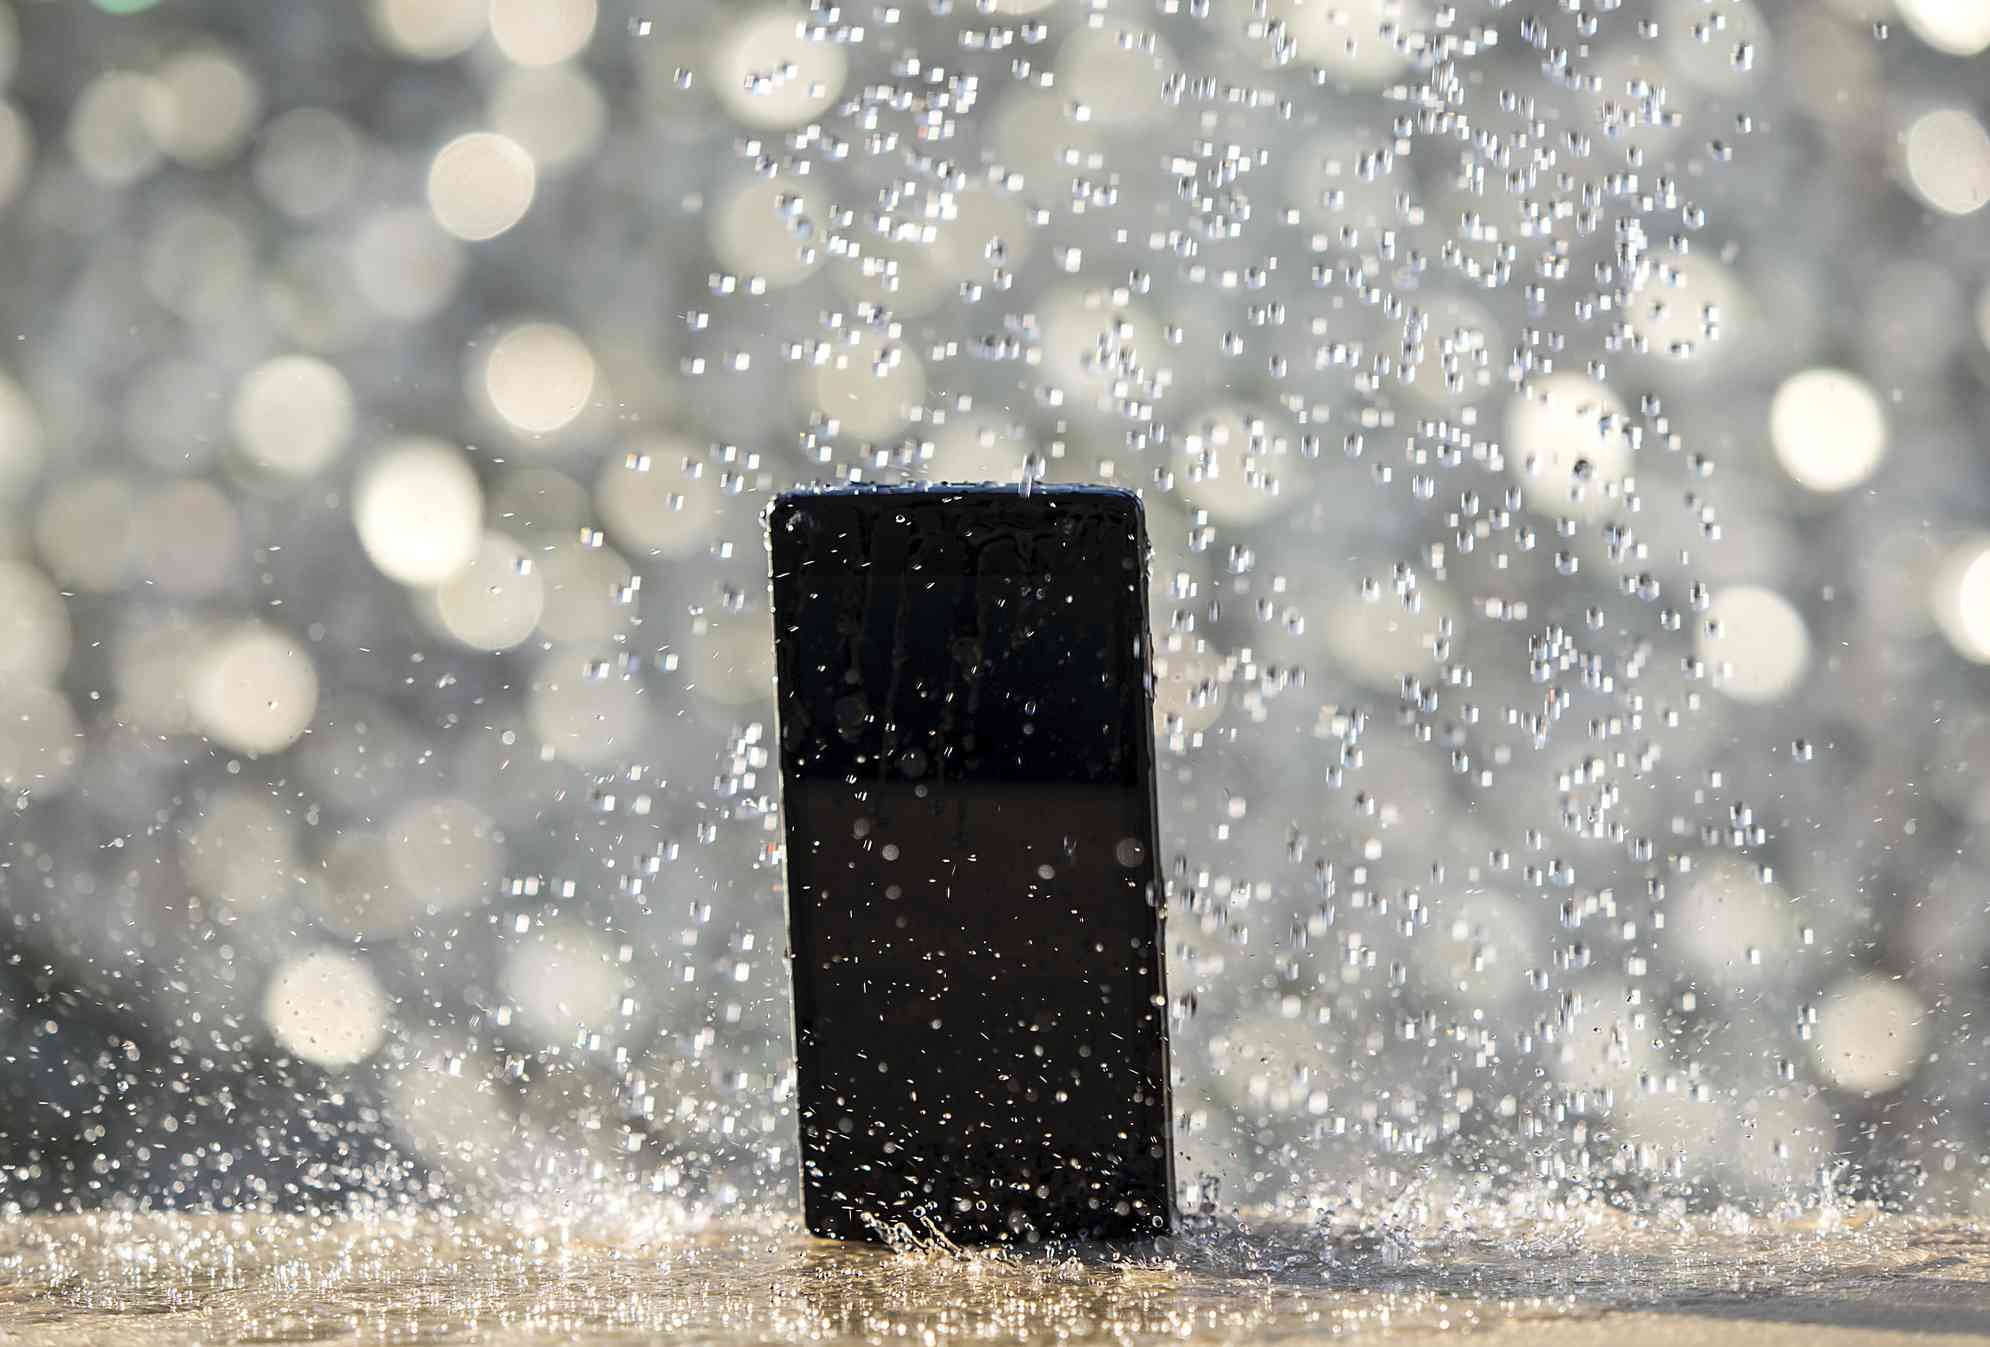 iPhone getting soaked by a torrent of water droplets